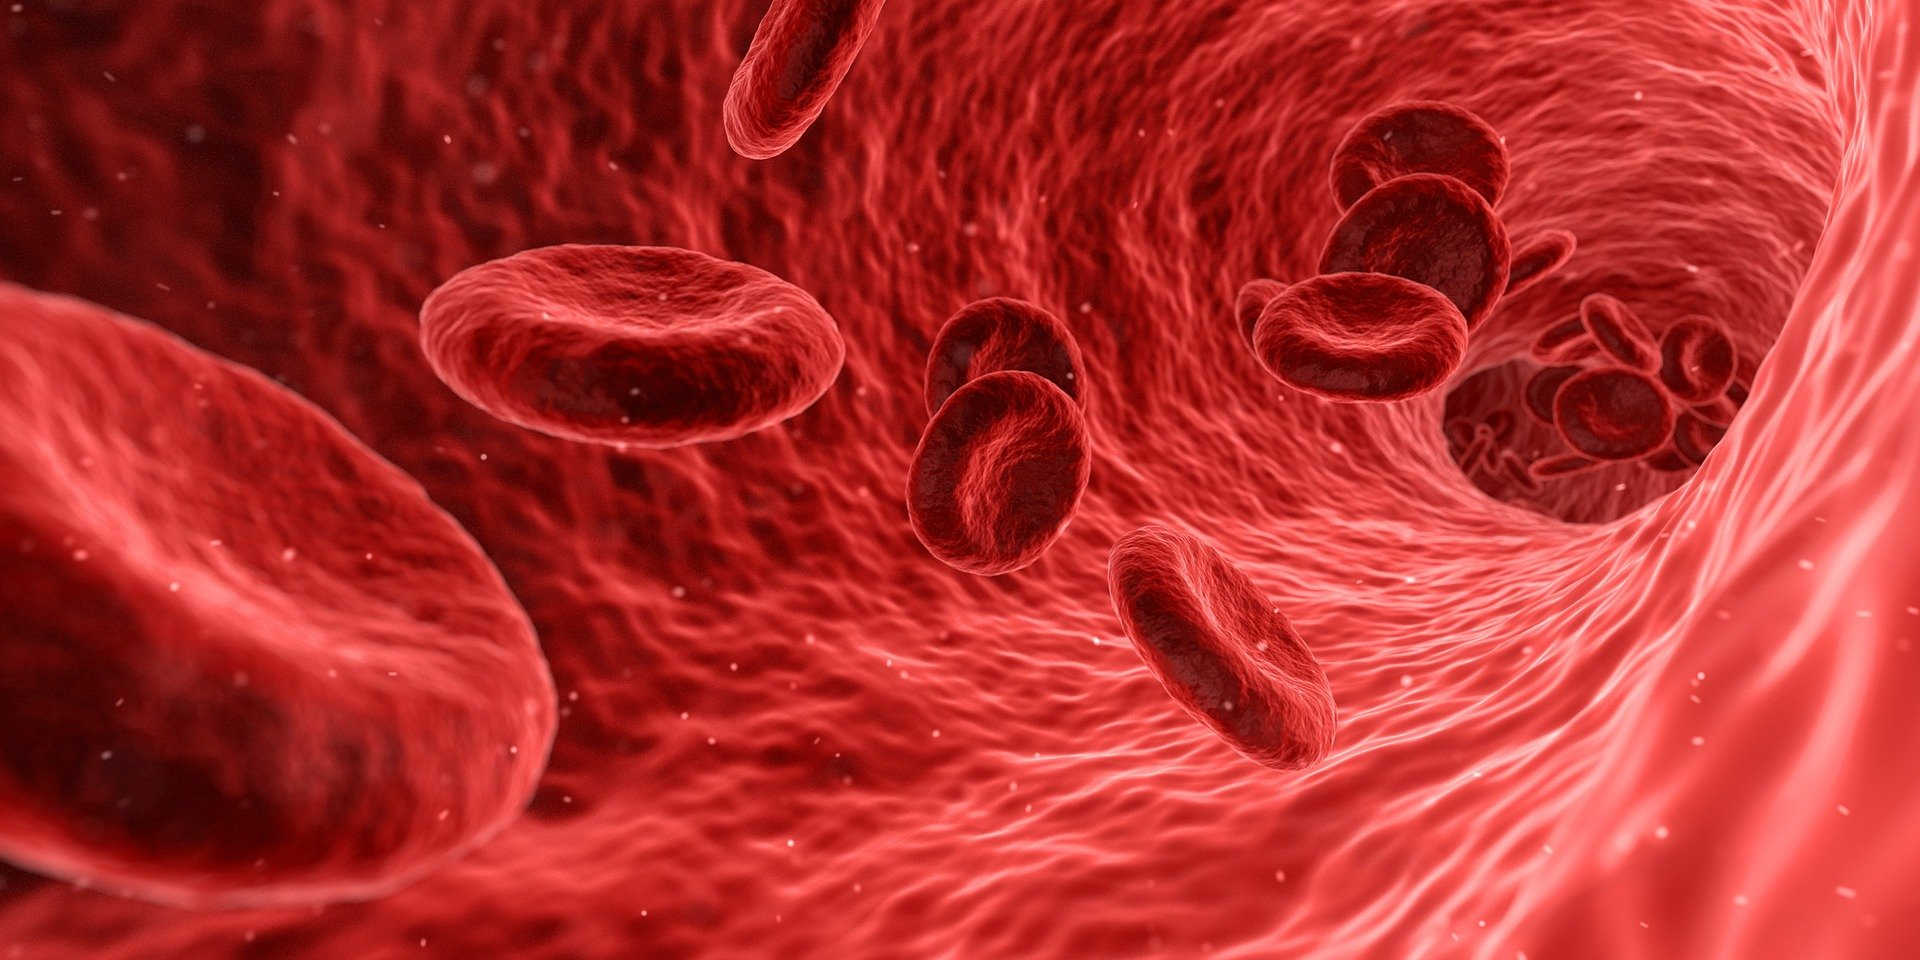 Blood Cancer in Hindi, Blood Cancer Symptoms in Hindi